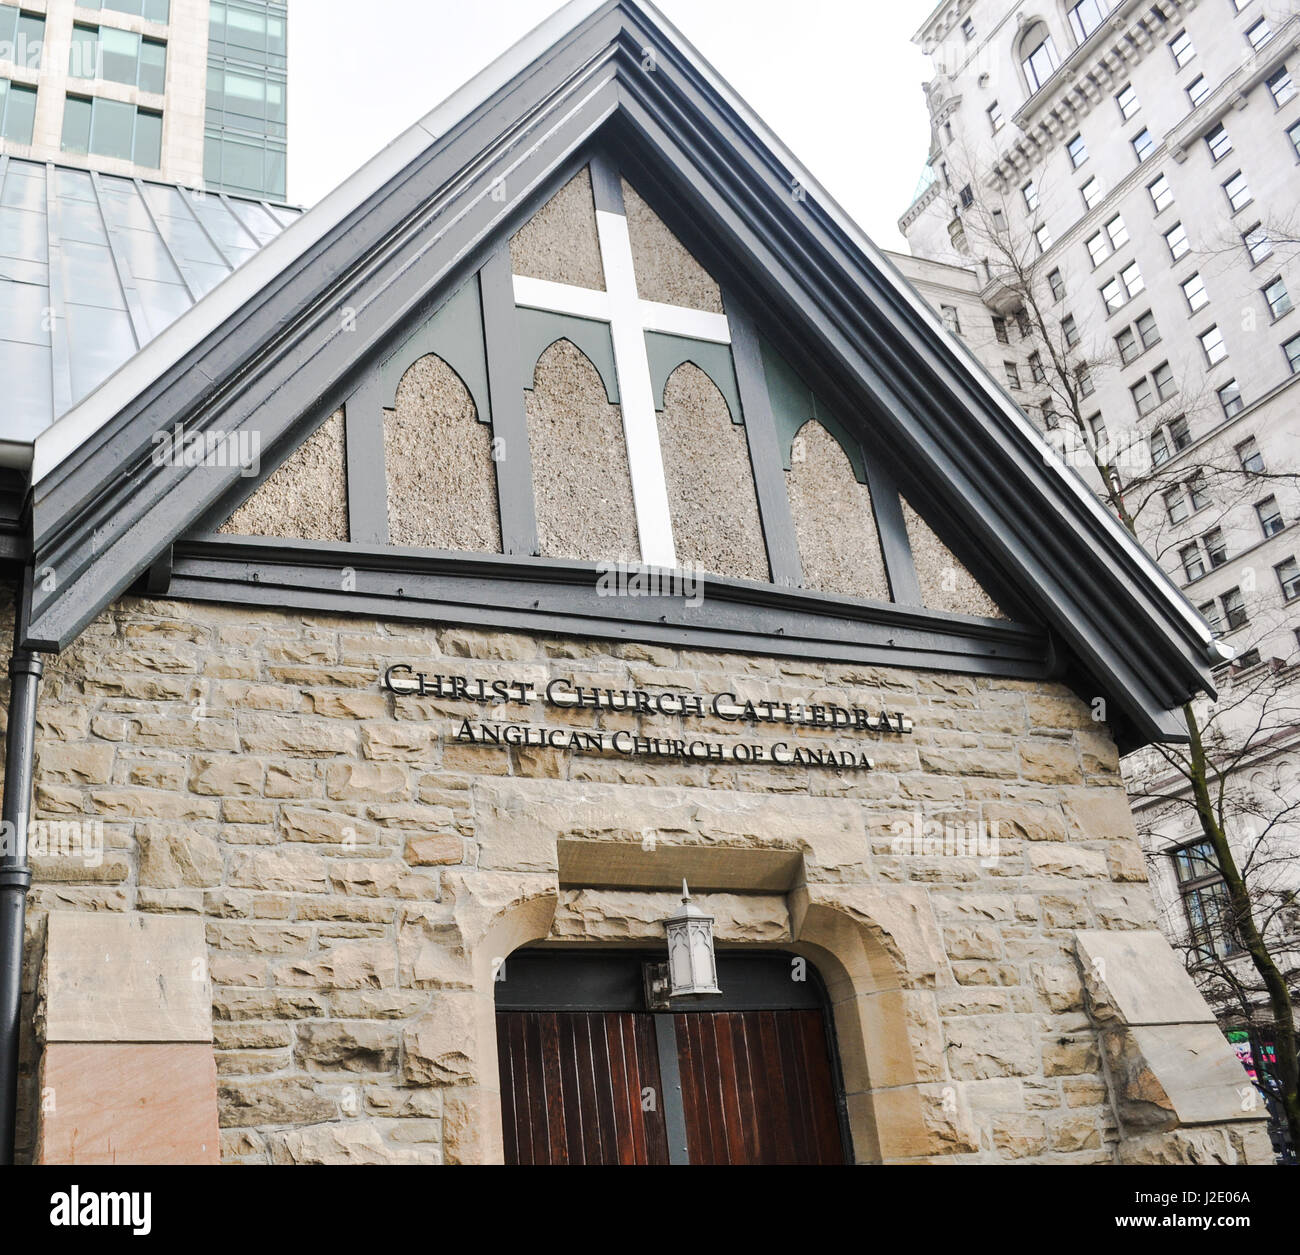 Christ Church Cathedral Anglican Church of Canada located at Downtown Vancouver,BC Canada Stock Photo